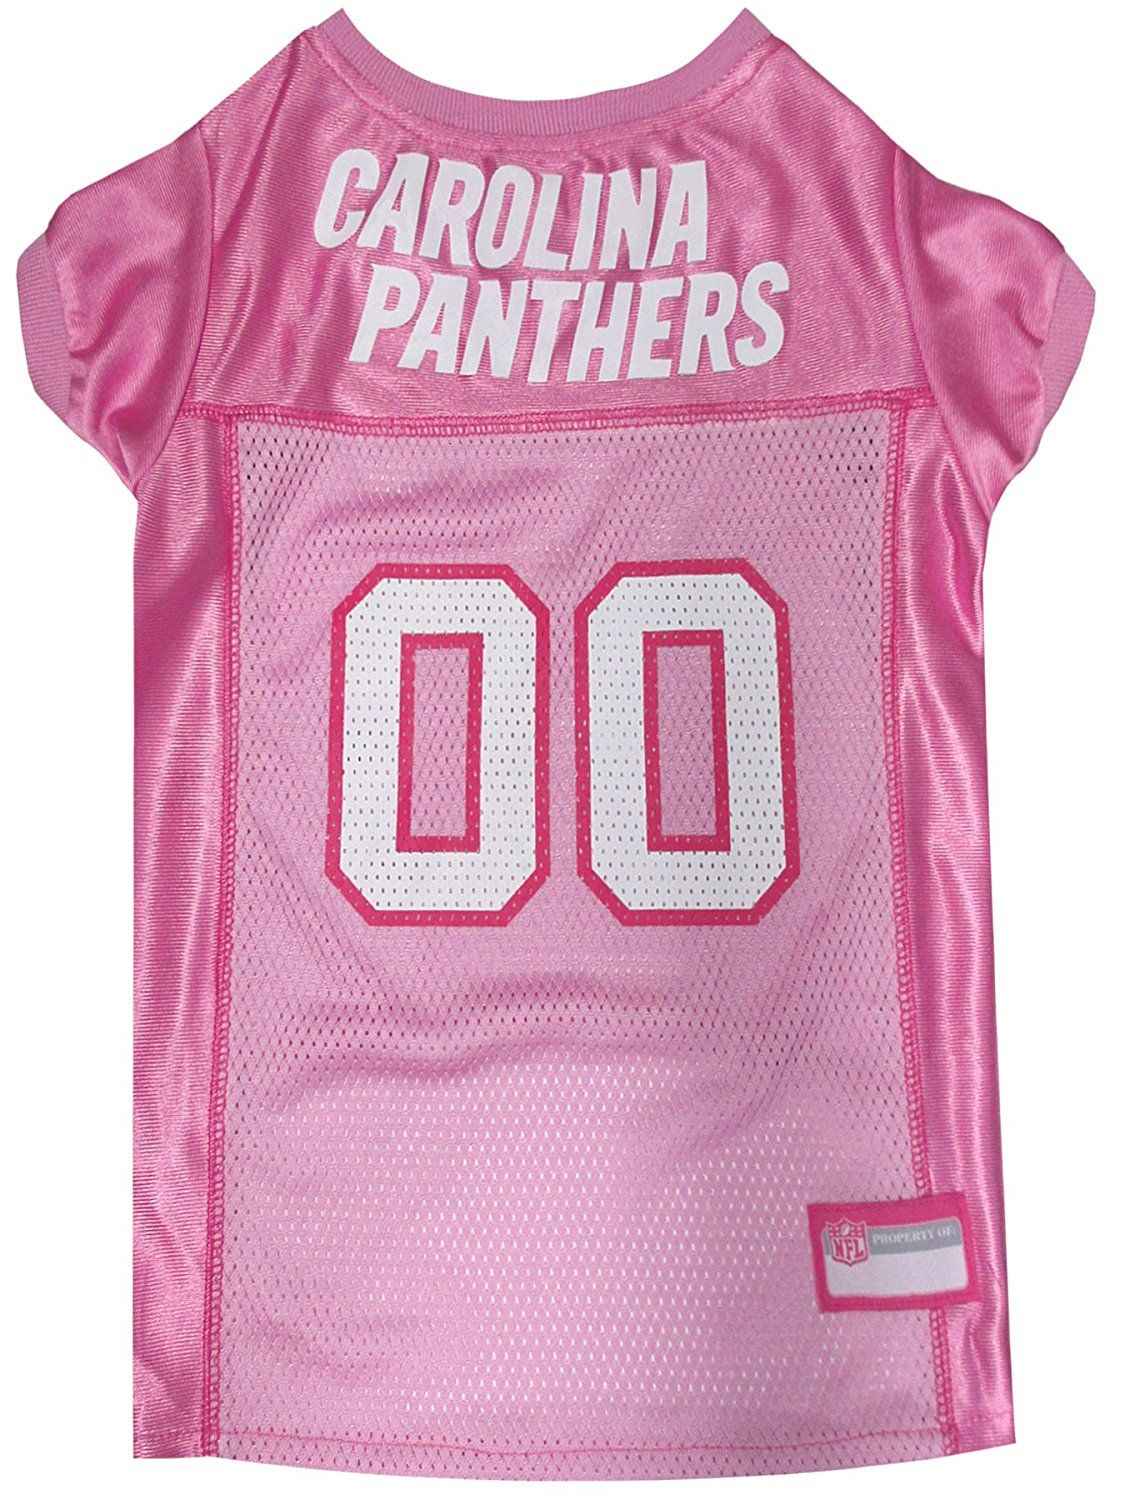 Pets First NFL Carolina Panthers Jersey ** Discover this